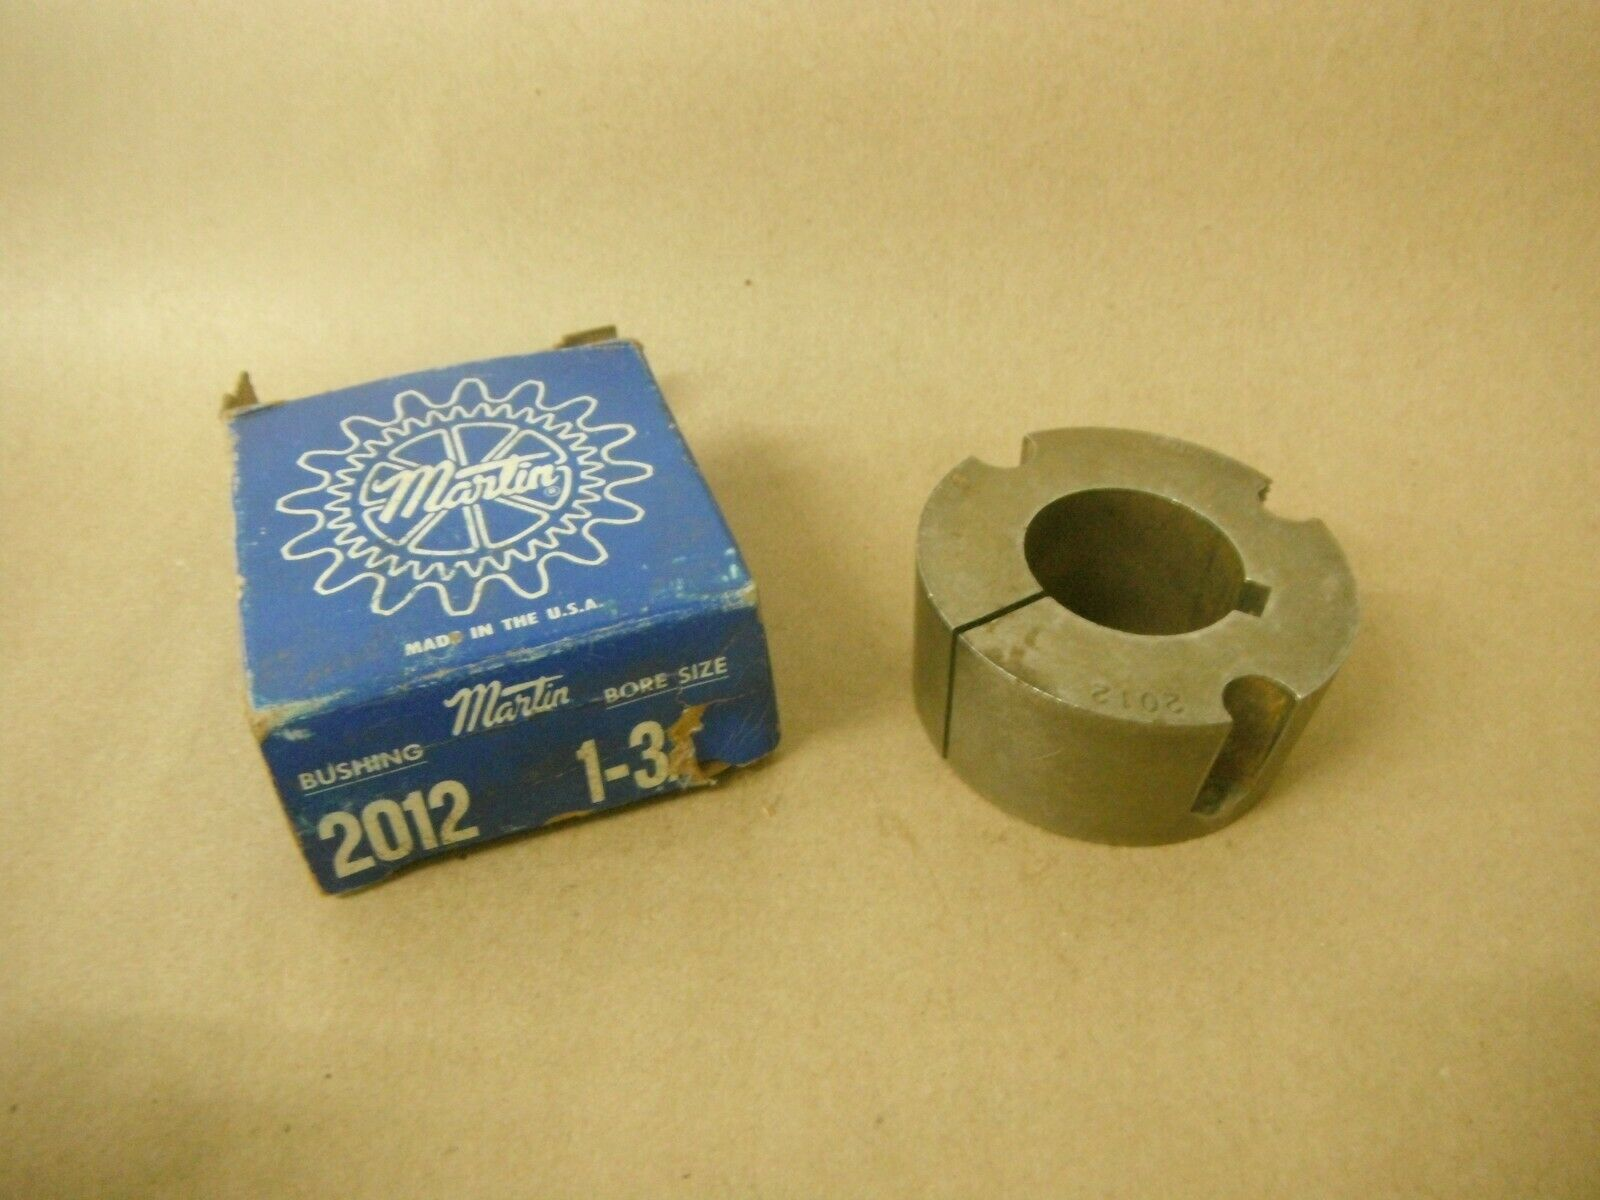 Primary image for MARTIN 2012 1-3/8 BUSHING